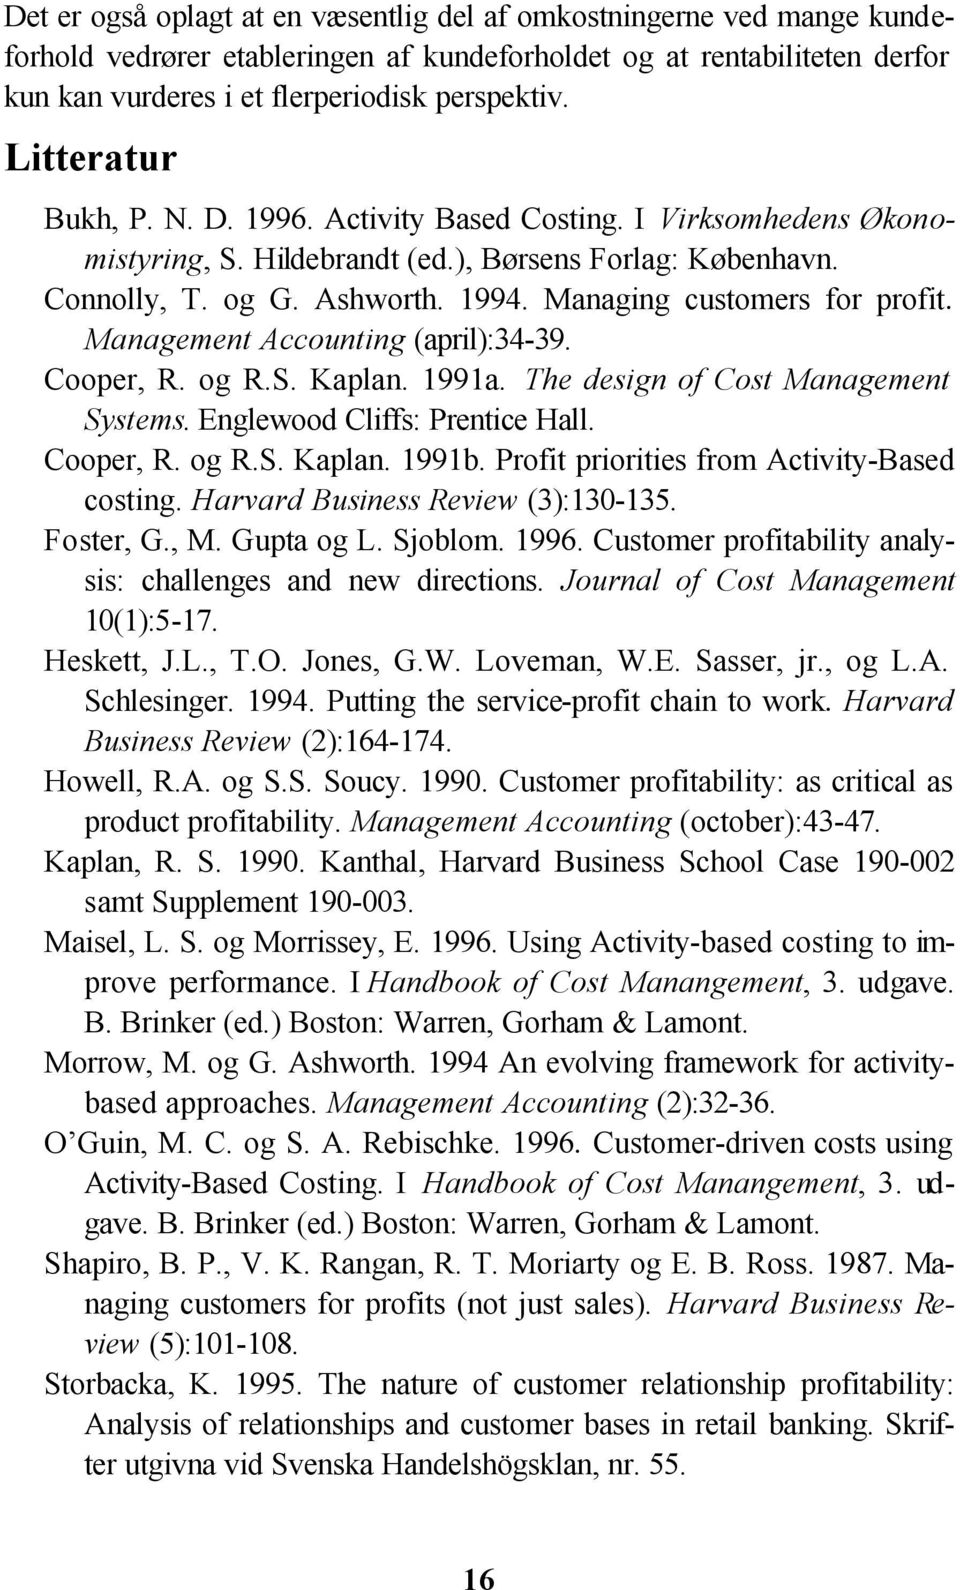 Managing customers for profit. Management Accounting (april):34-39. Cooper, R. og R.S. Kaplan. 1991a. The design of Cost Management Systems. Englewood Cliffs: Prentice Hall. Cooper, R. og R.S. Kaplan. 1991b.